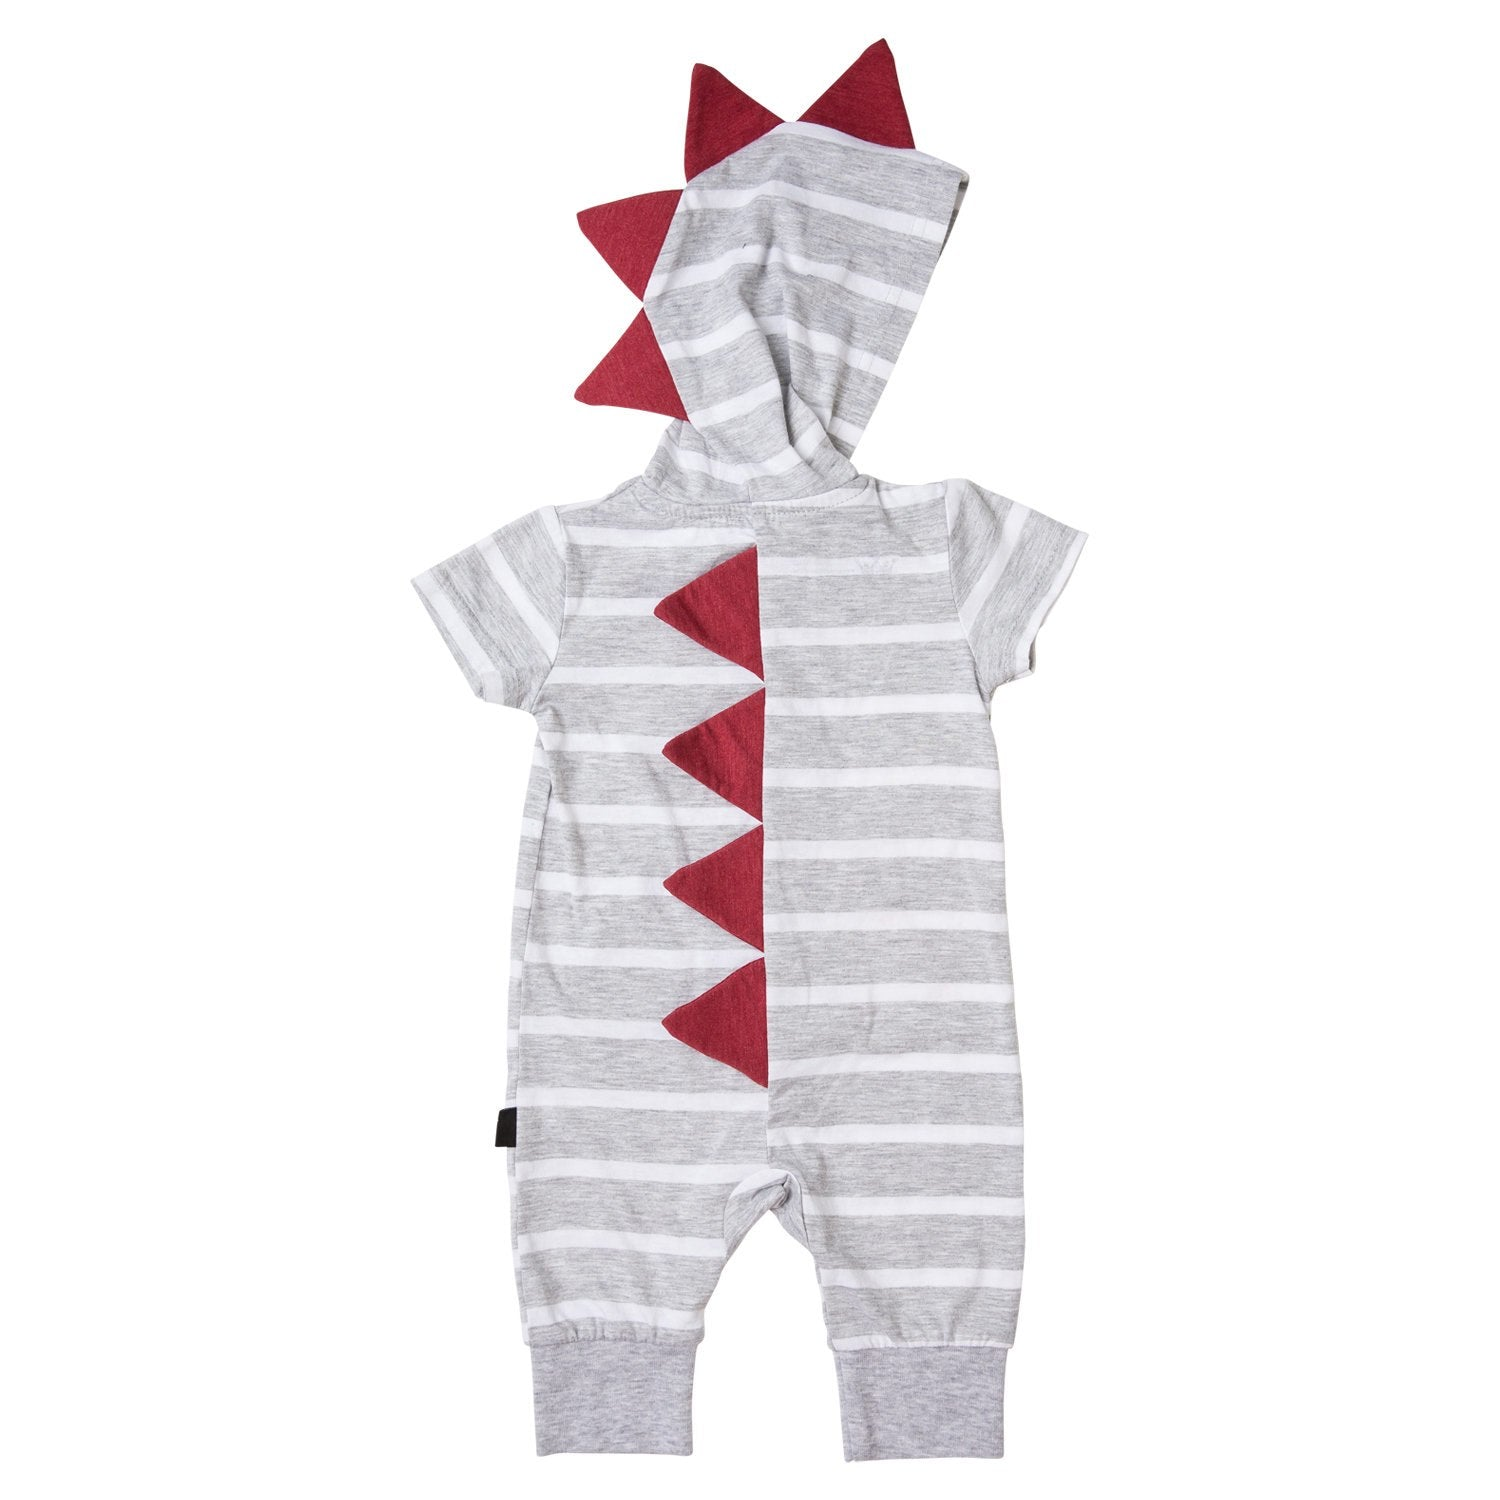 ssdinor-tgs-thick-gray-stripe-short-sleeve-dino-hoodie-romper-back.jpg